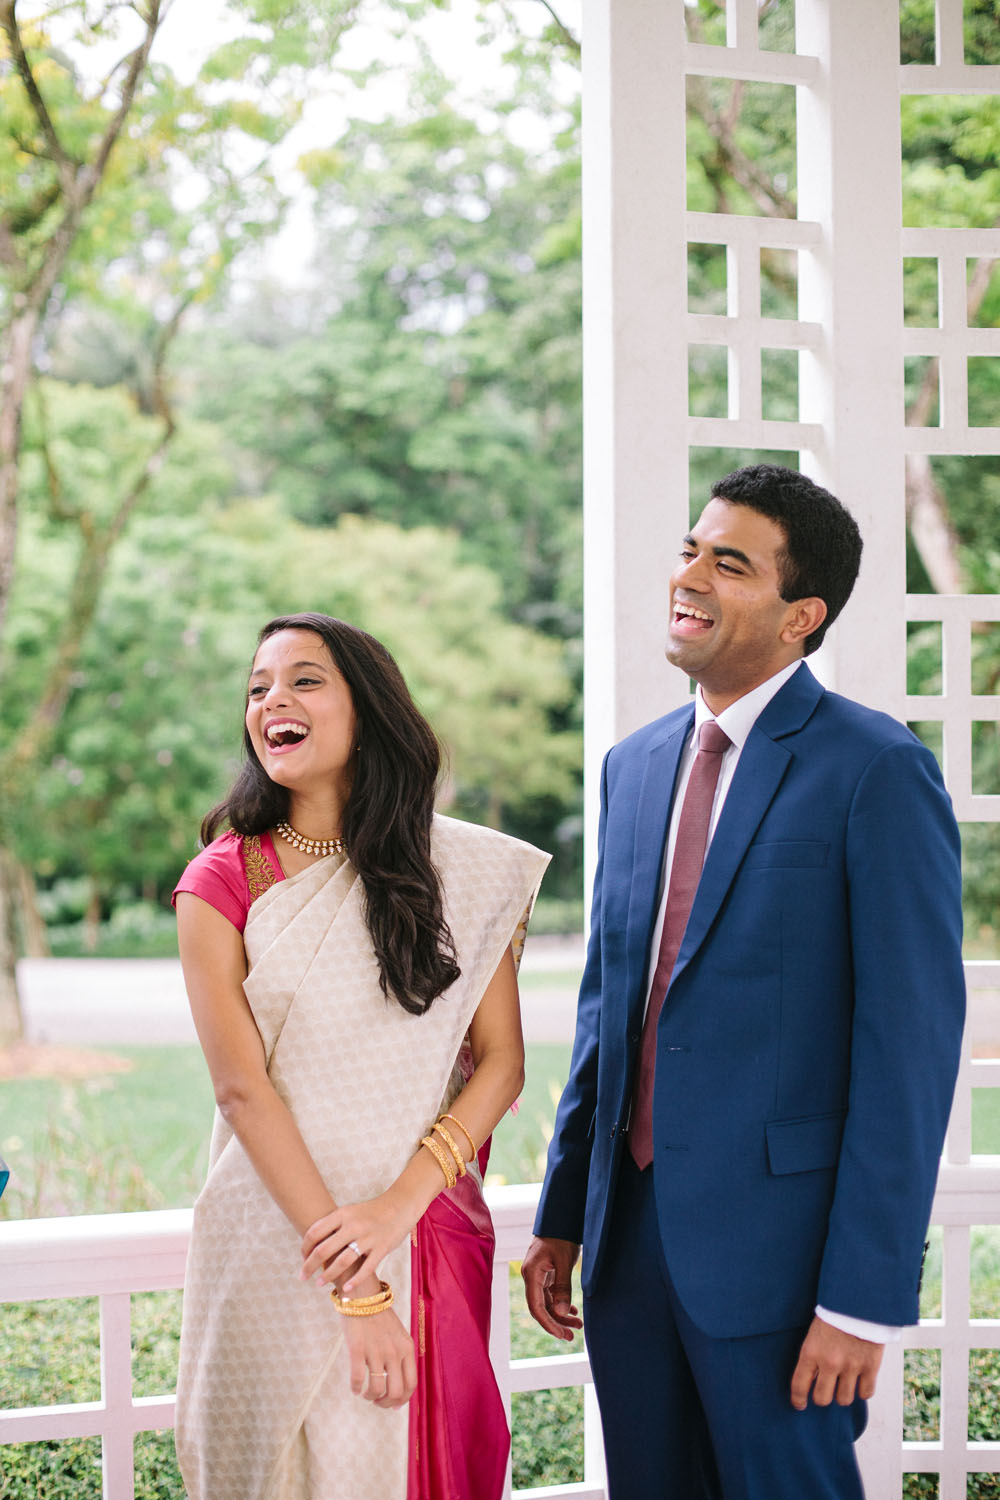 singapore-wedding-photographer-we-made-these-dhriti-arjun-19.jpg